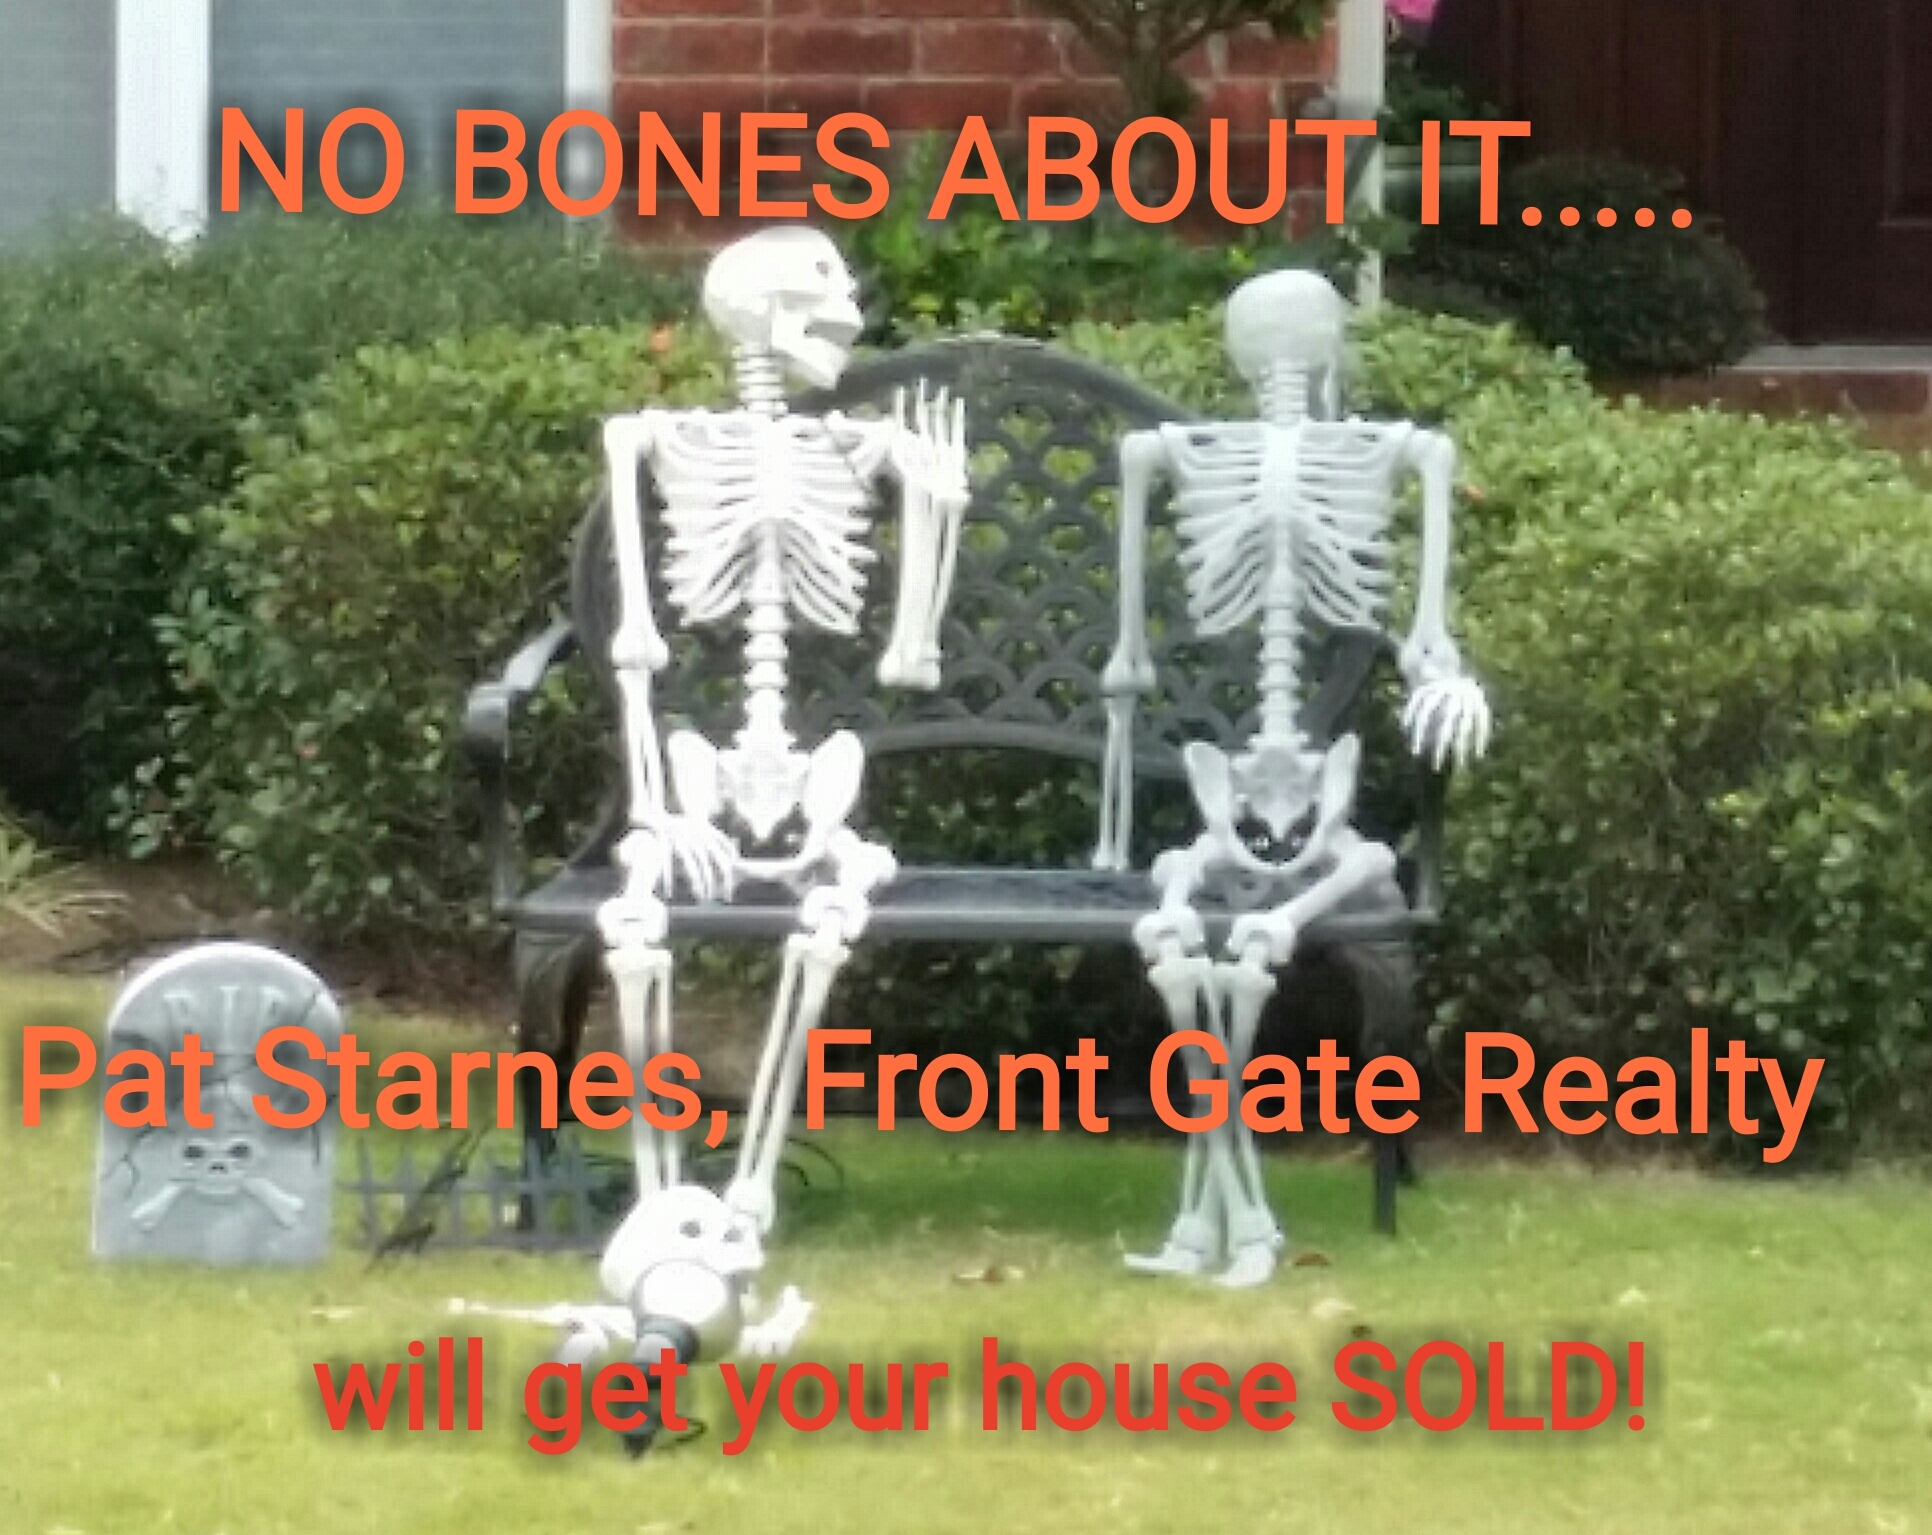 No BONES about real estate by Pat Starnes